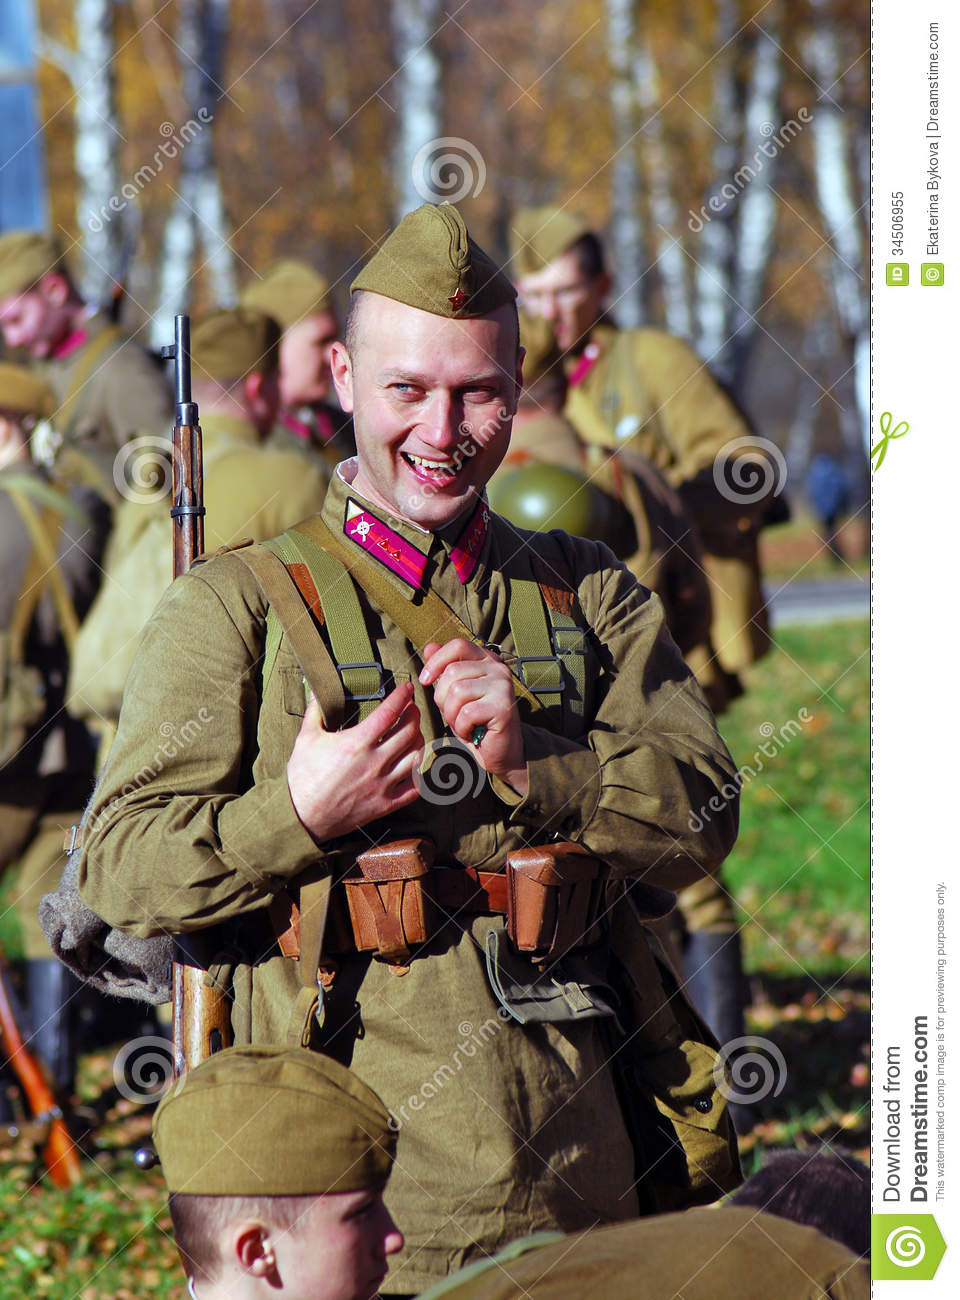 O To Ww Bing Comsquare Root 123: Portrait Of A Smiling Reenactor Editorial Image